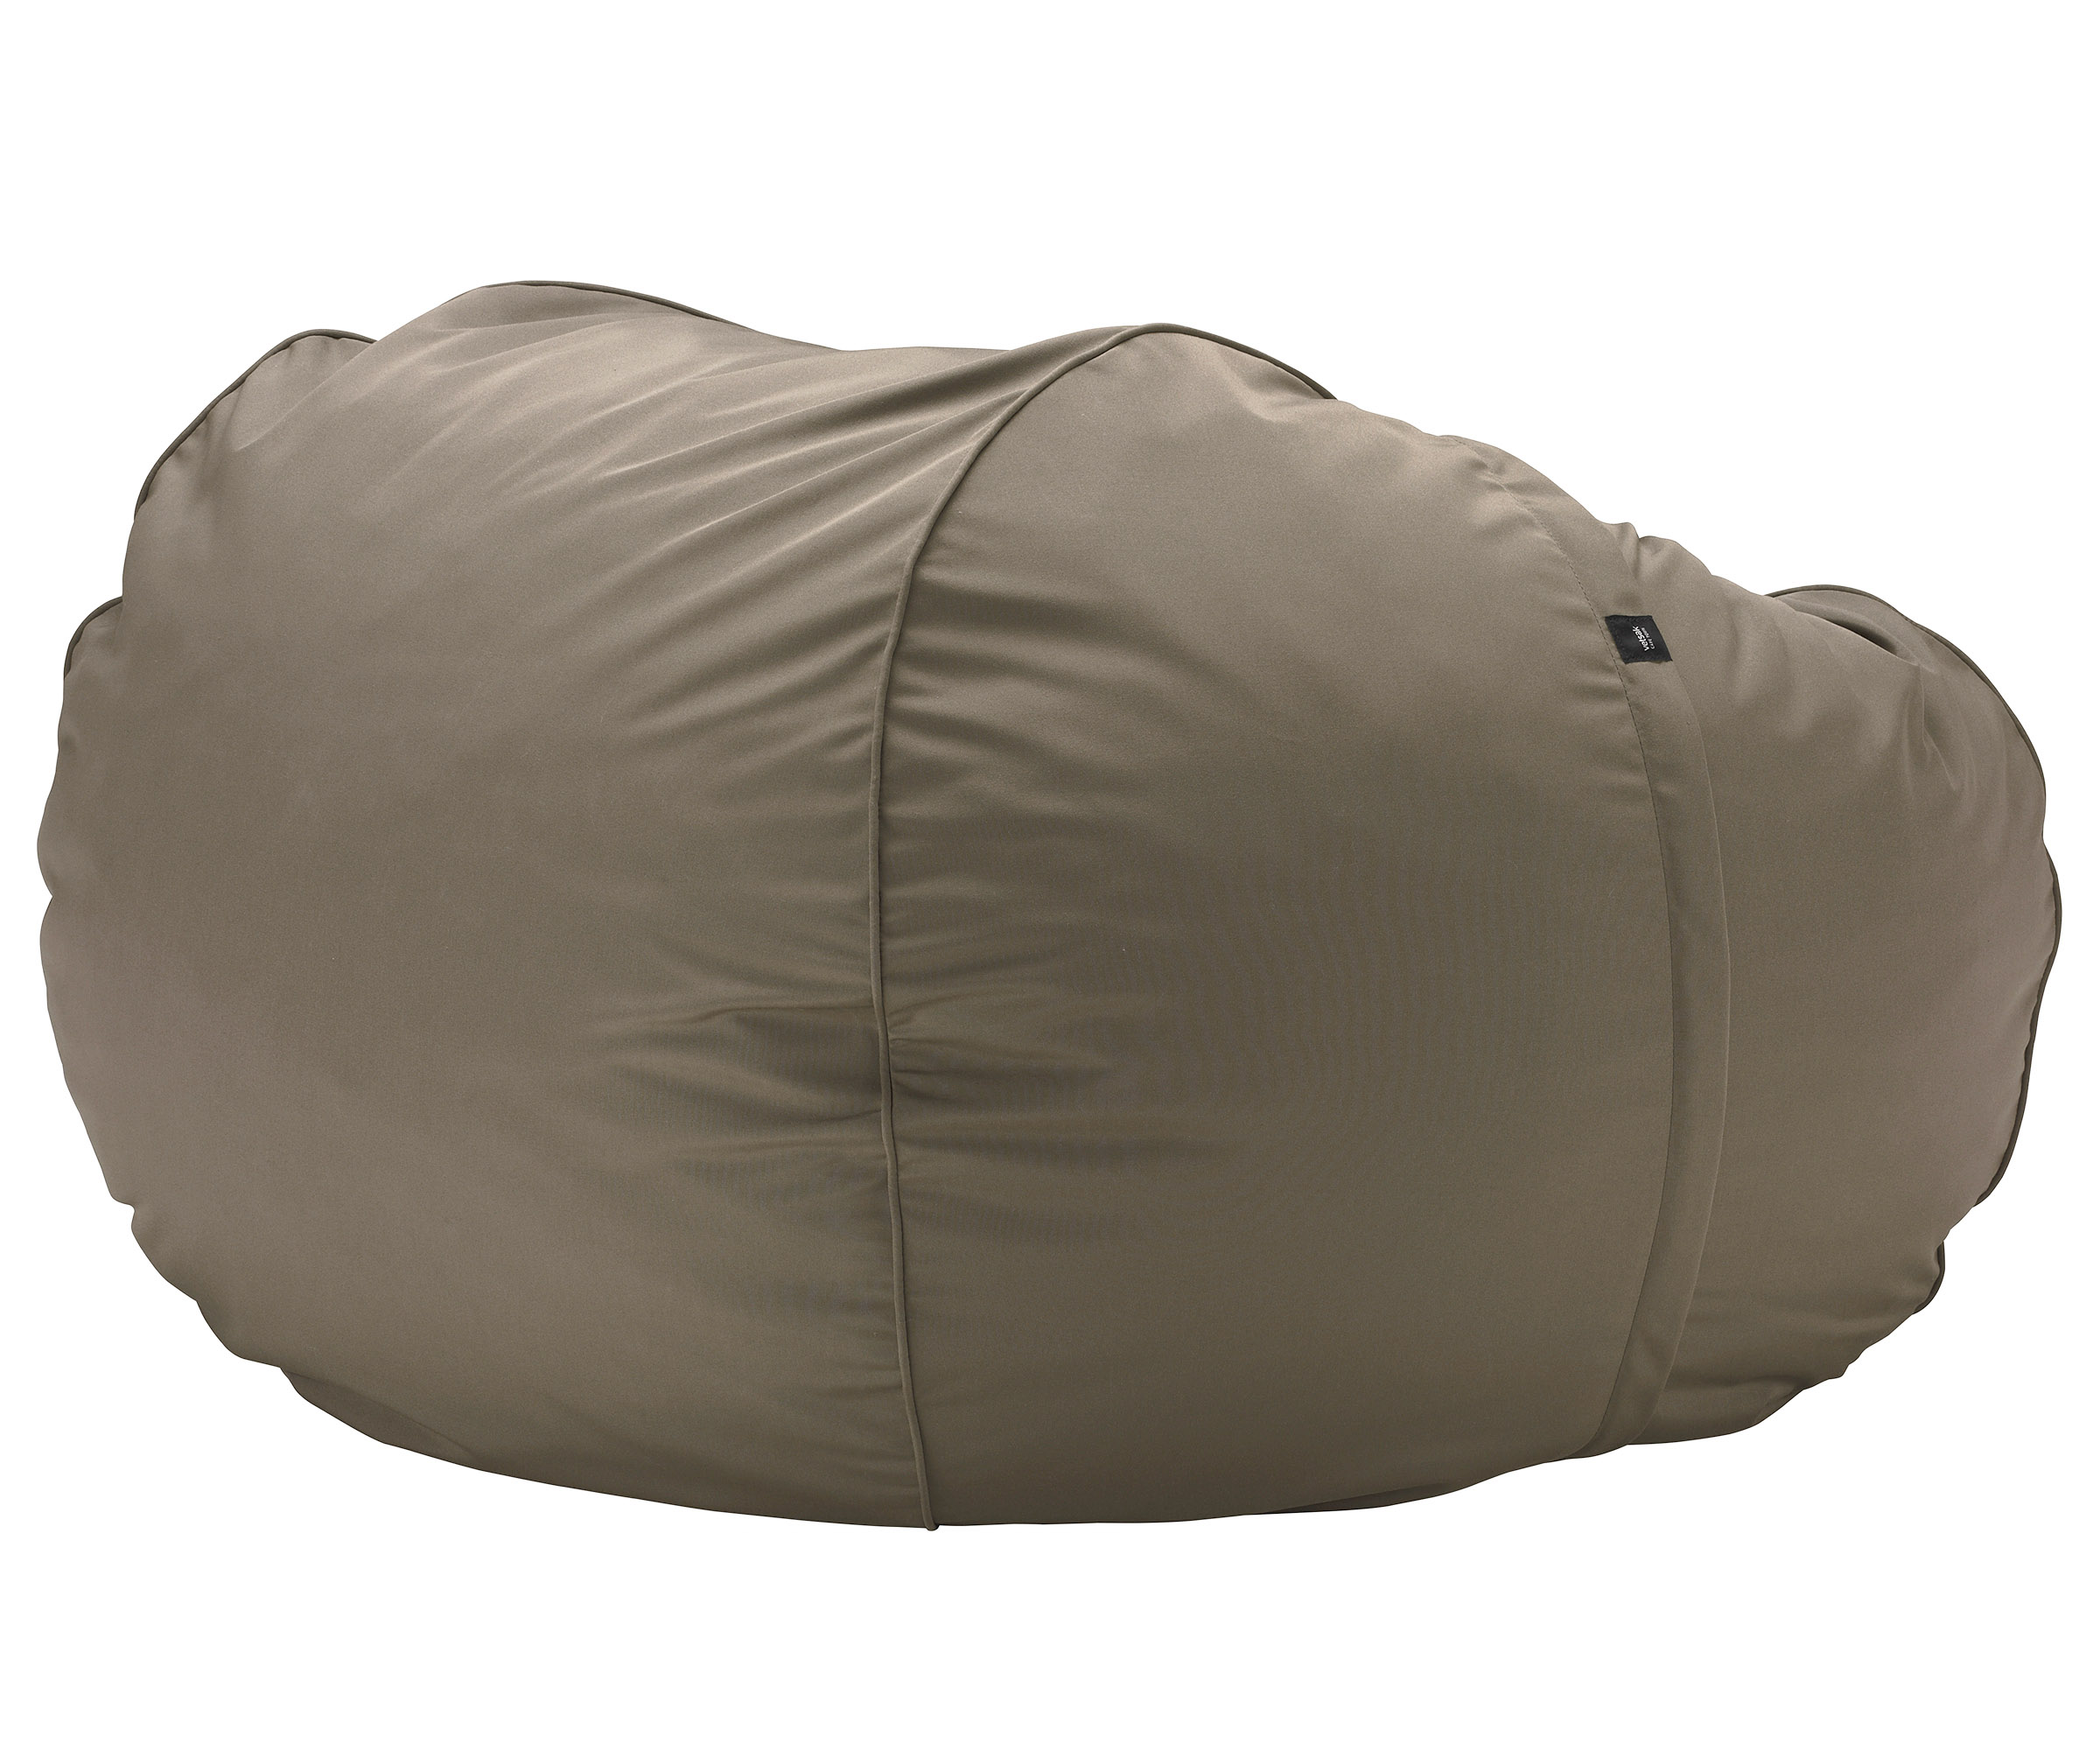 Beanbag Large Outdoor stone